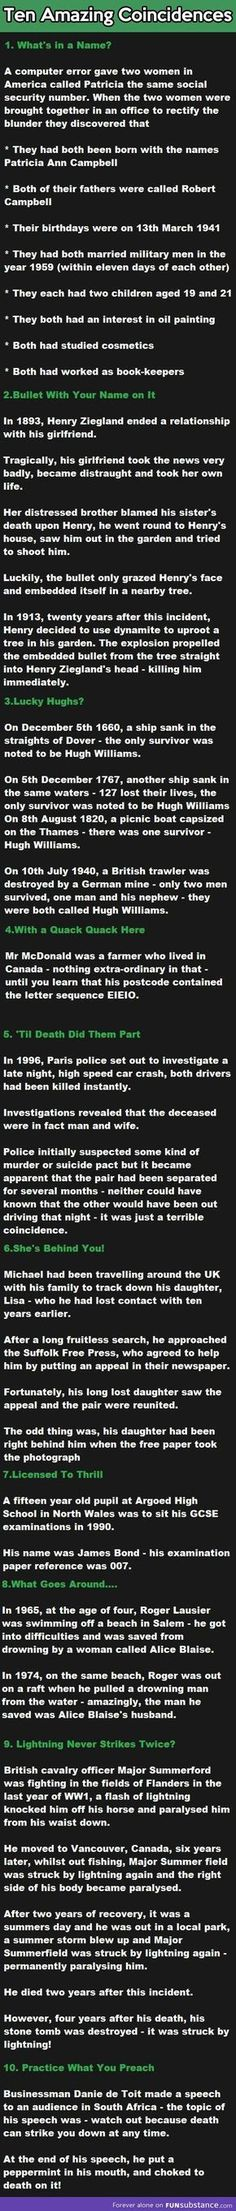 10 Amazing Coincidences. I don't if they're true but I hope they are